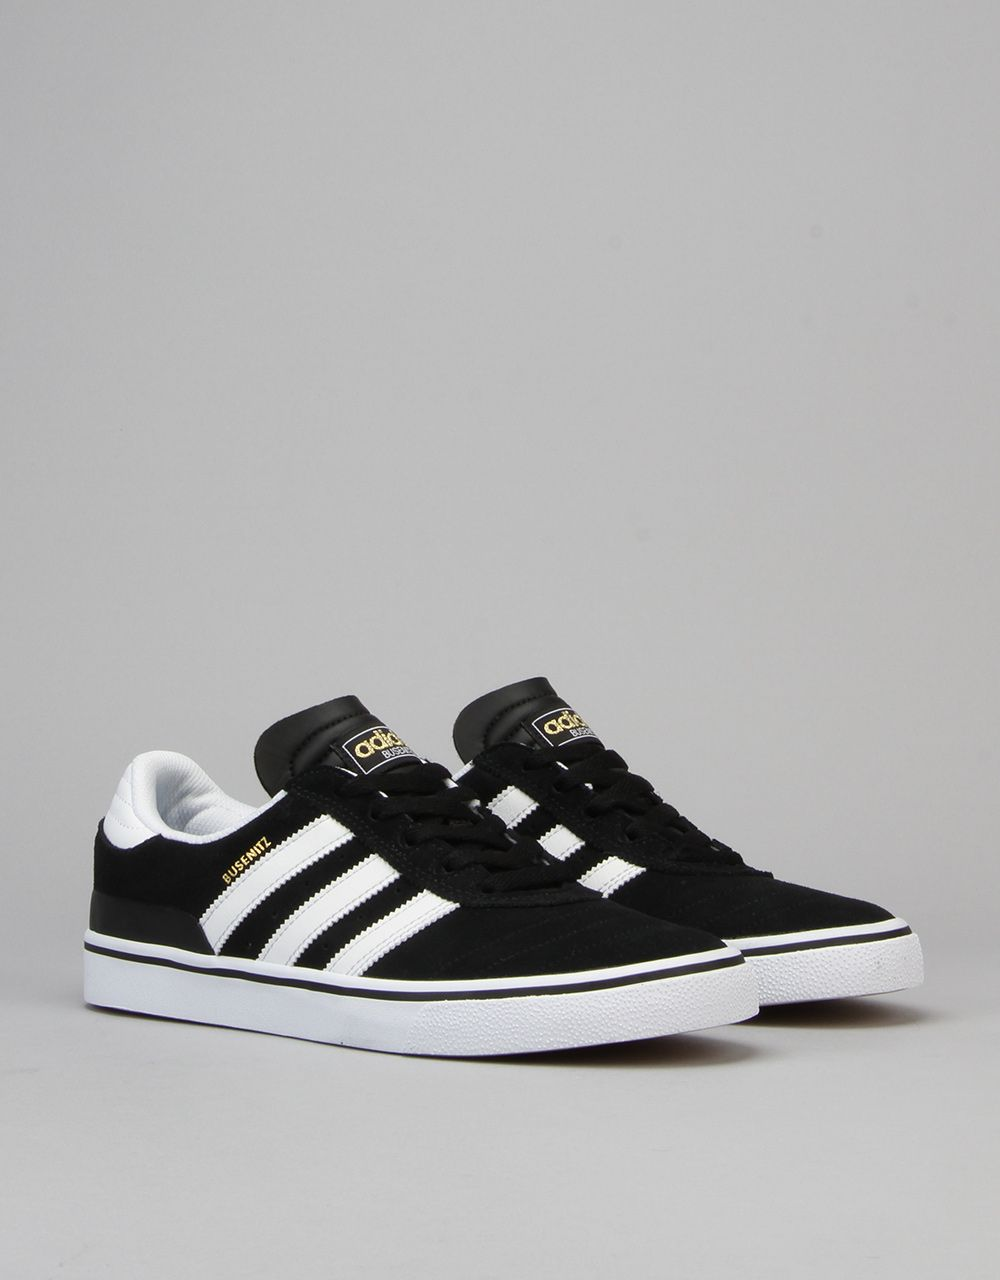 74500c7ac Adidas Busenitz Vulc Skate Shoes - Black Running White Black -  RouteOne.co.uk